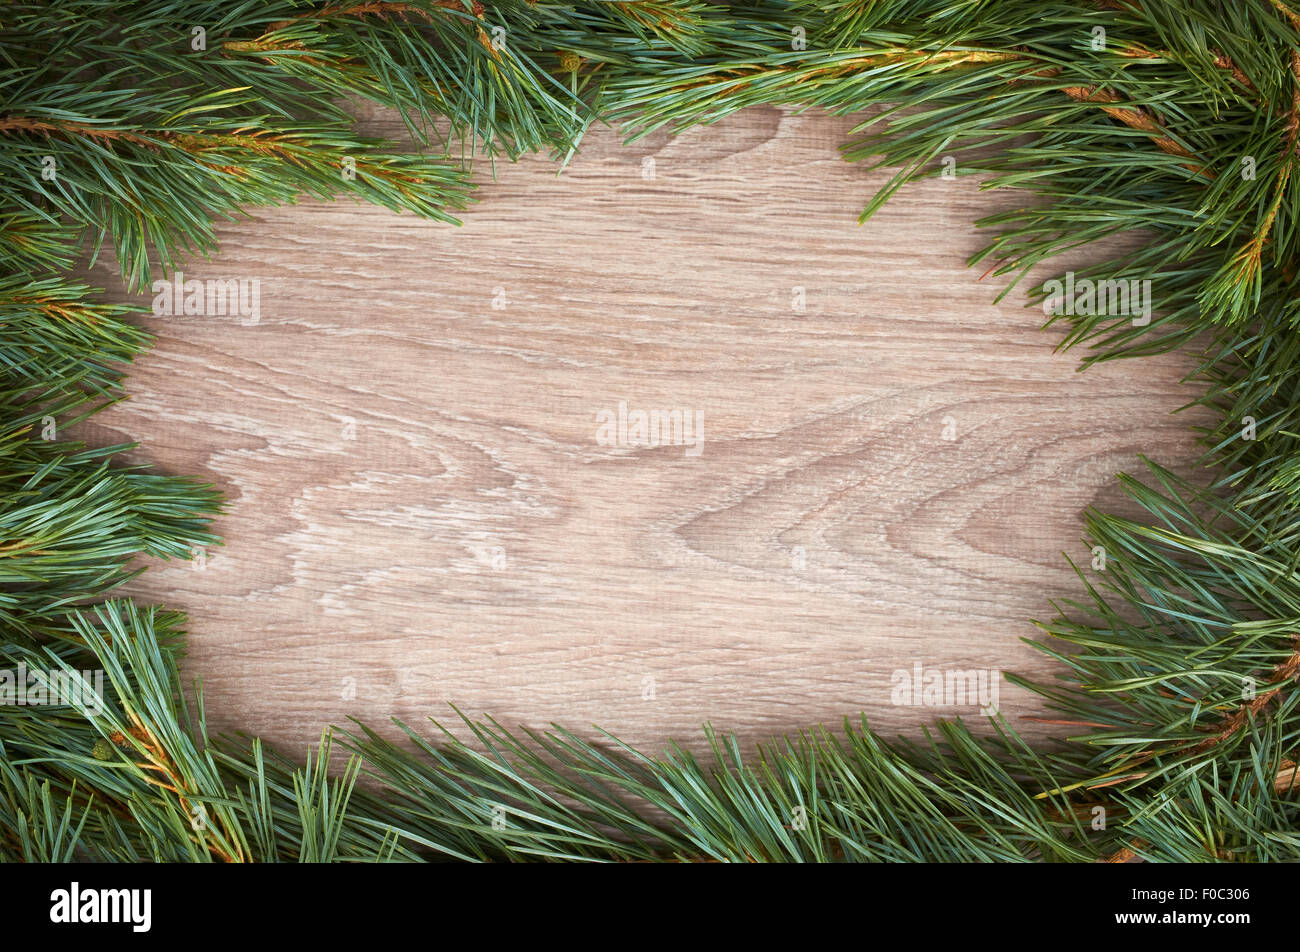 traditional pine tree christmas border decoration on a wood background